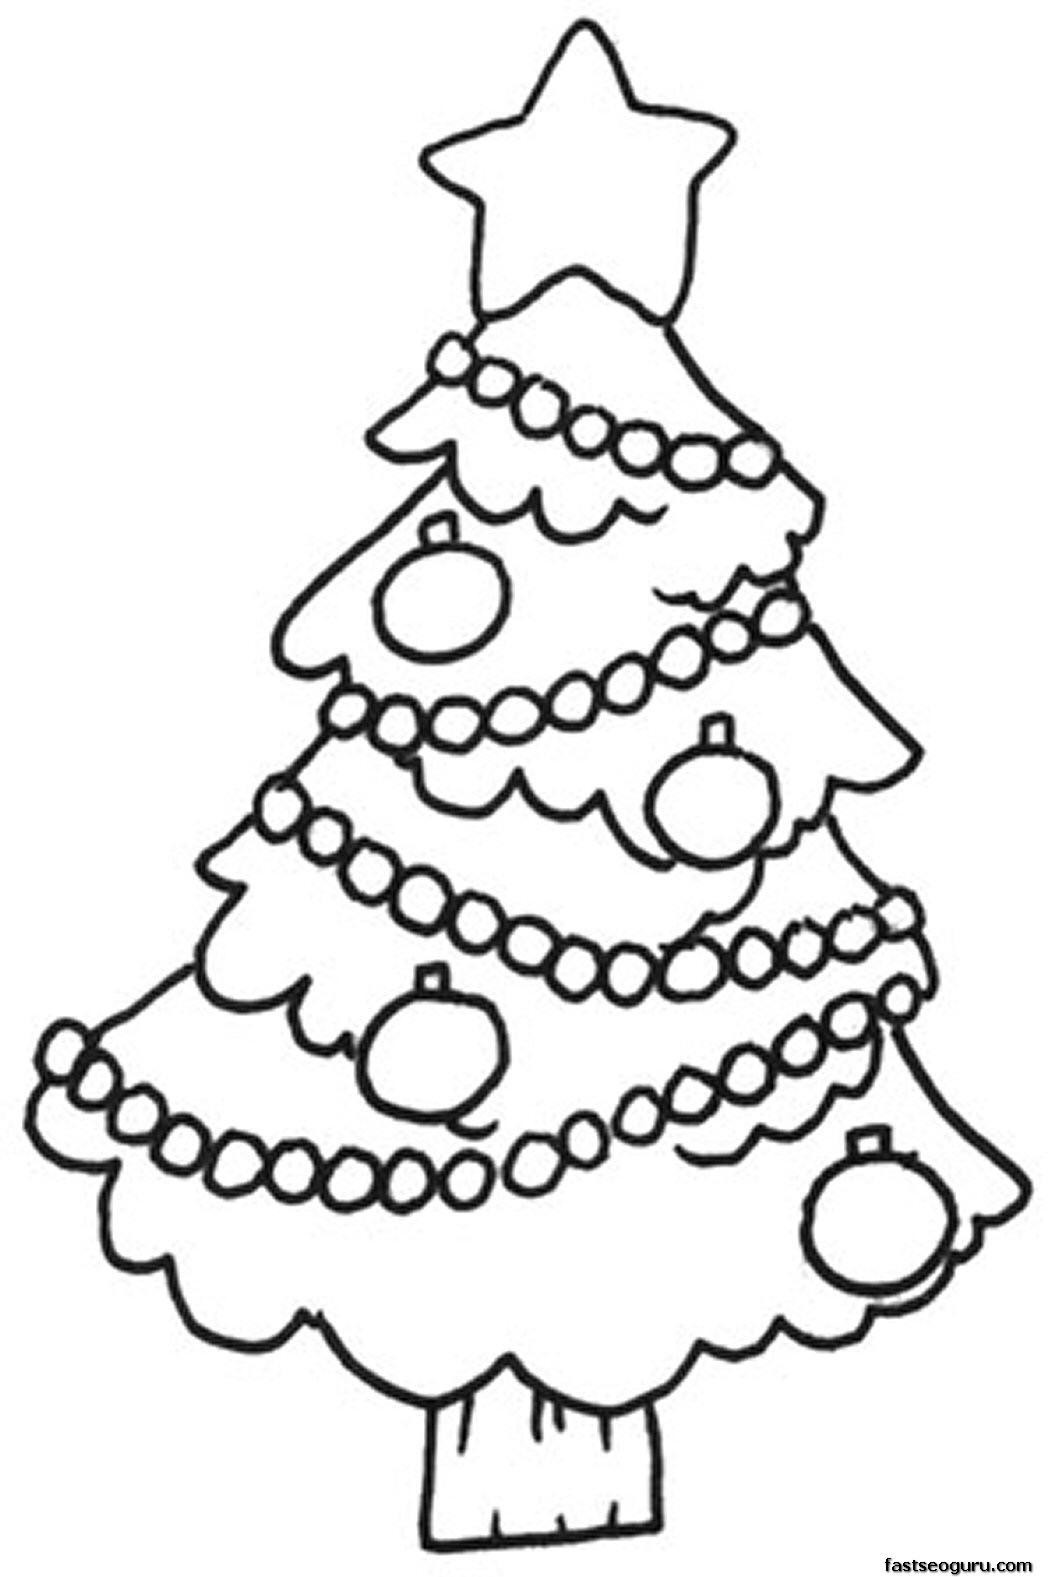 Christmas Colouring Pages Easy With Free Printable Pictures Of Trees Download Clip Art